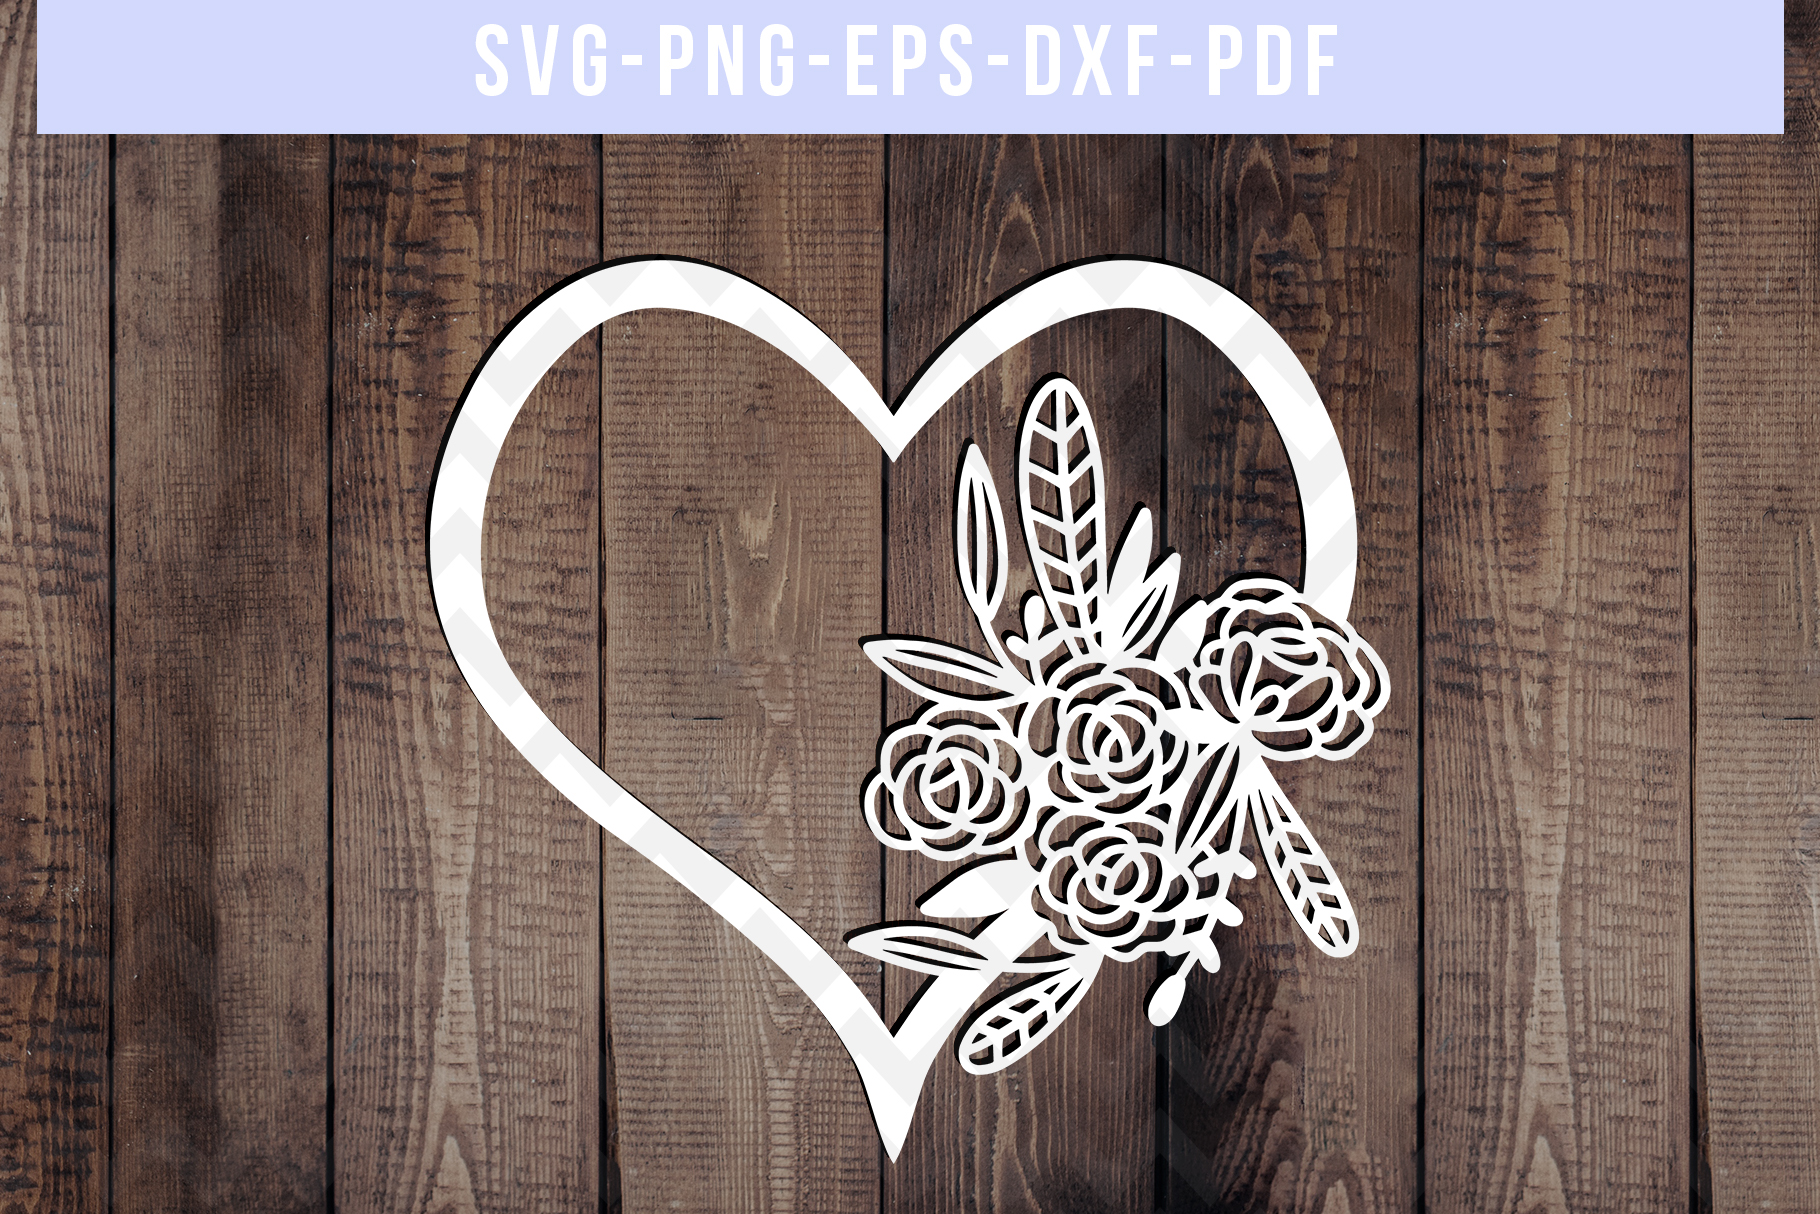 Bundle Of 9 Floral Wedding Papercut Templates, SVG, DXF. PDF example image 2